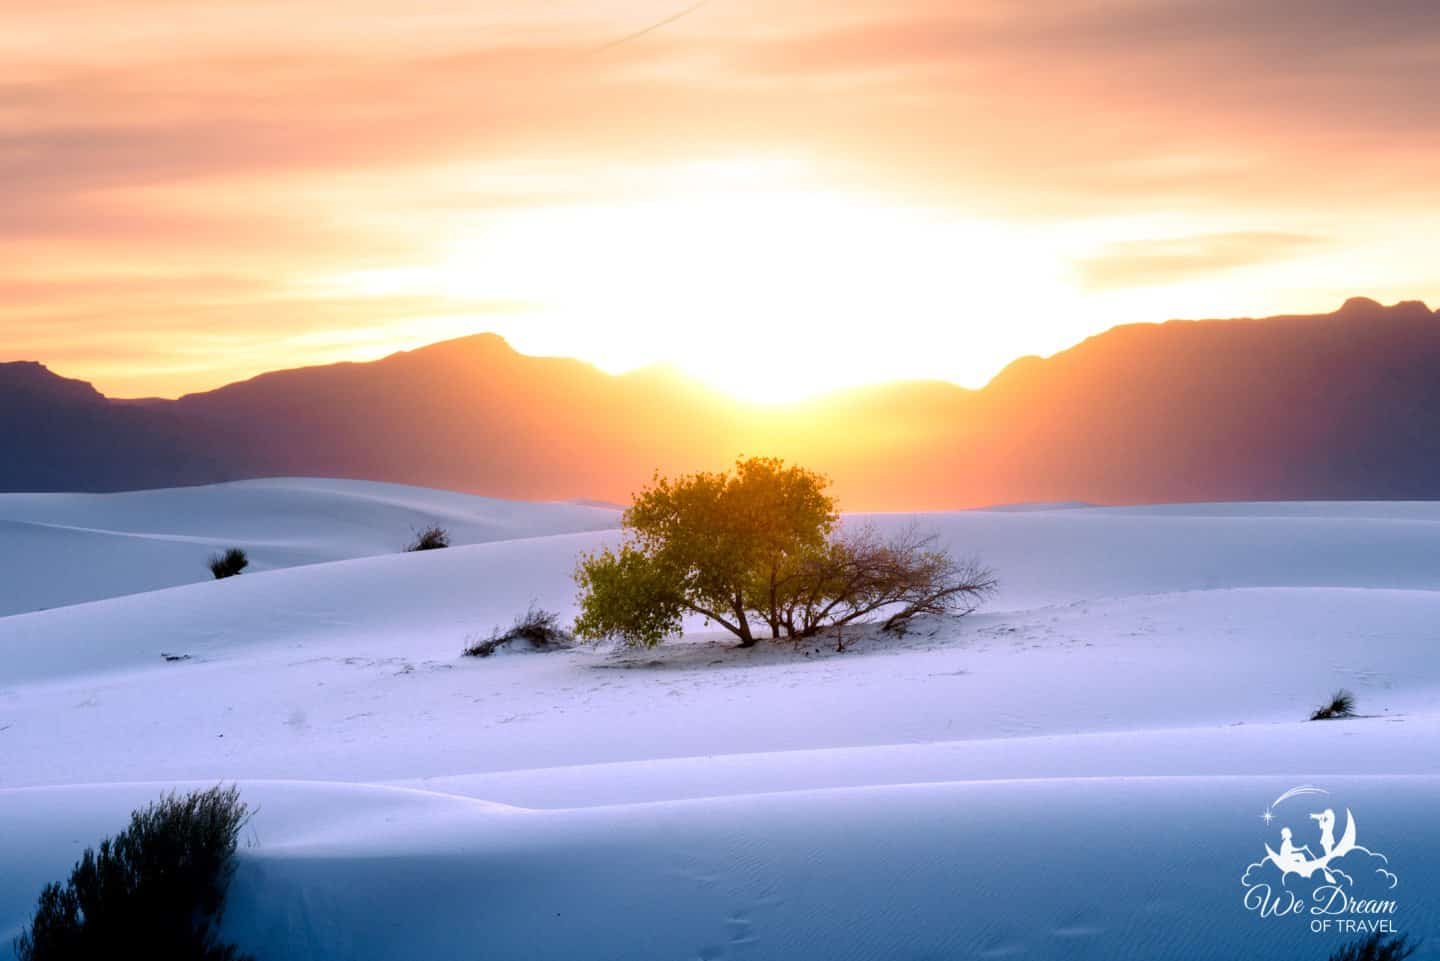 My favorite tree in White Sands NP, posing for this sunset picture.